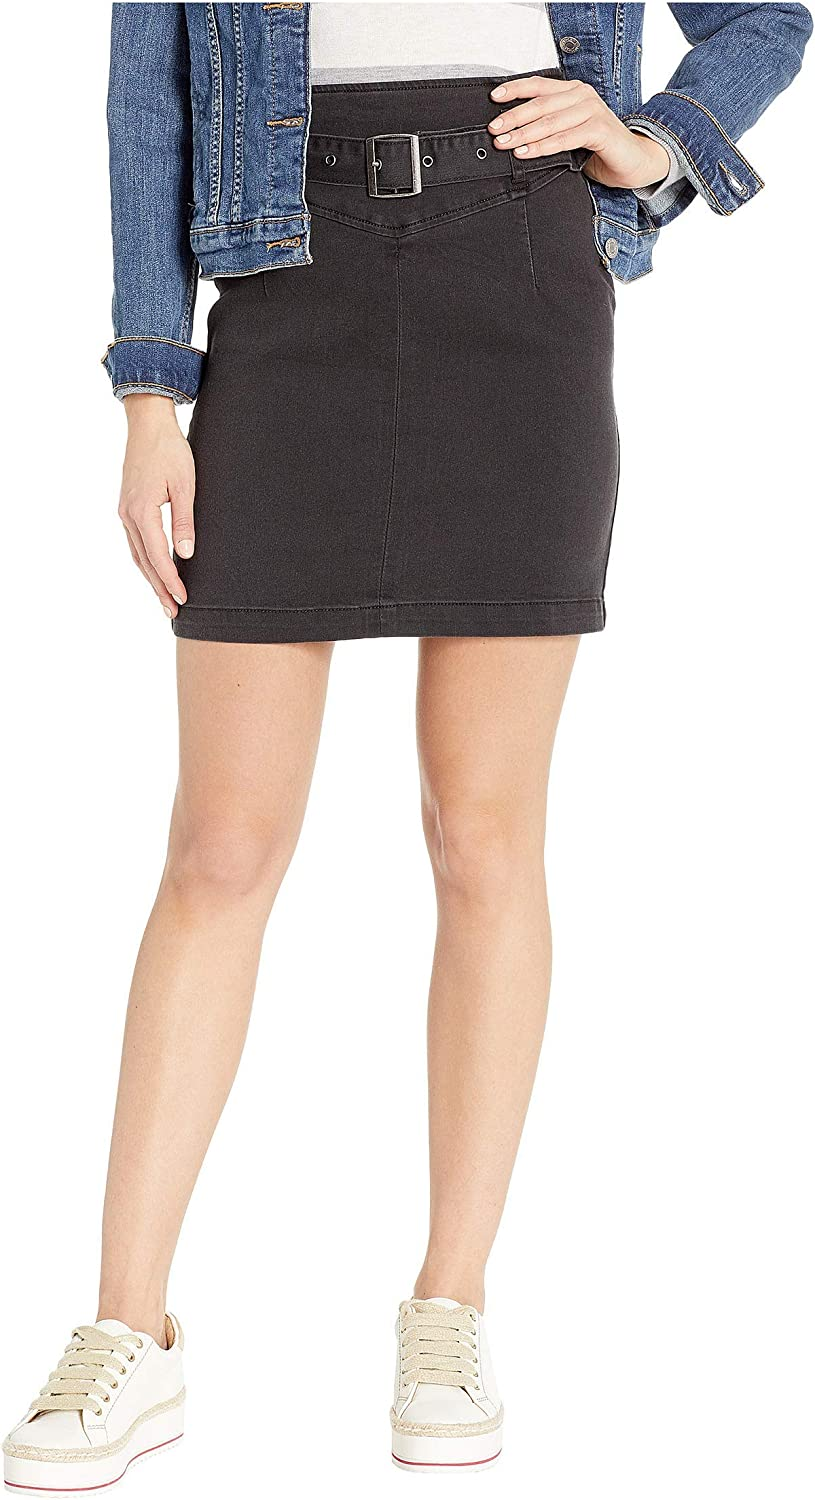 Free People Womens Black Belted Pencil Skirt Size 12